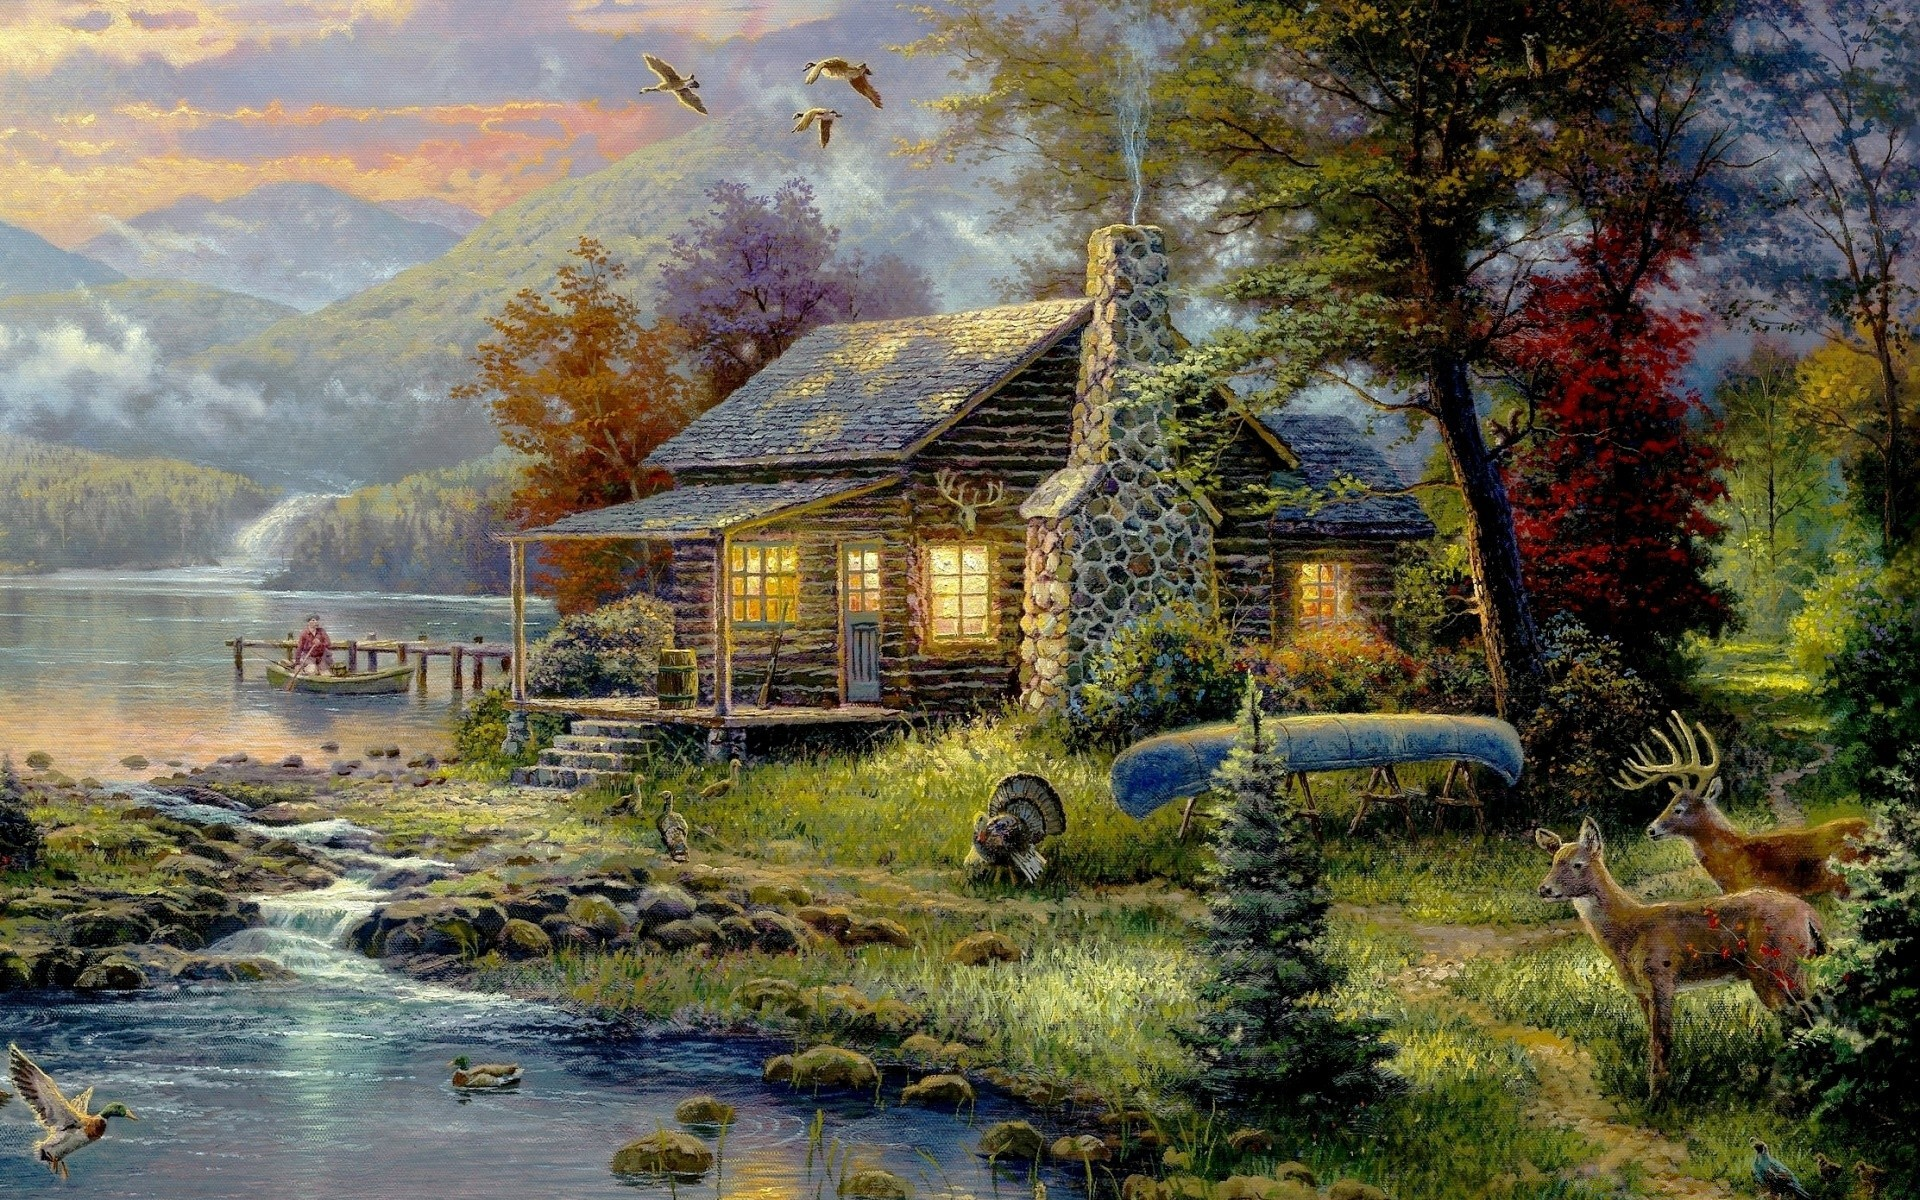 drawings house wood nature tree fall outdoors water landscape travel grass bungalow building architecture rural leaf